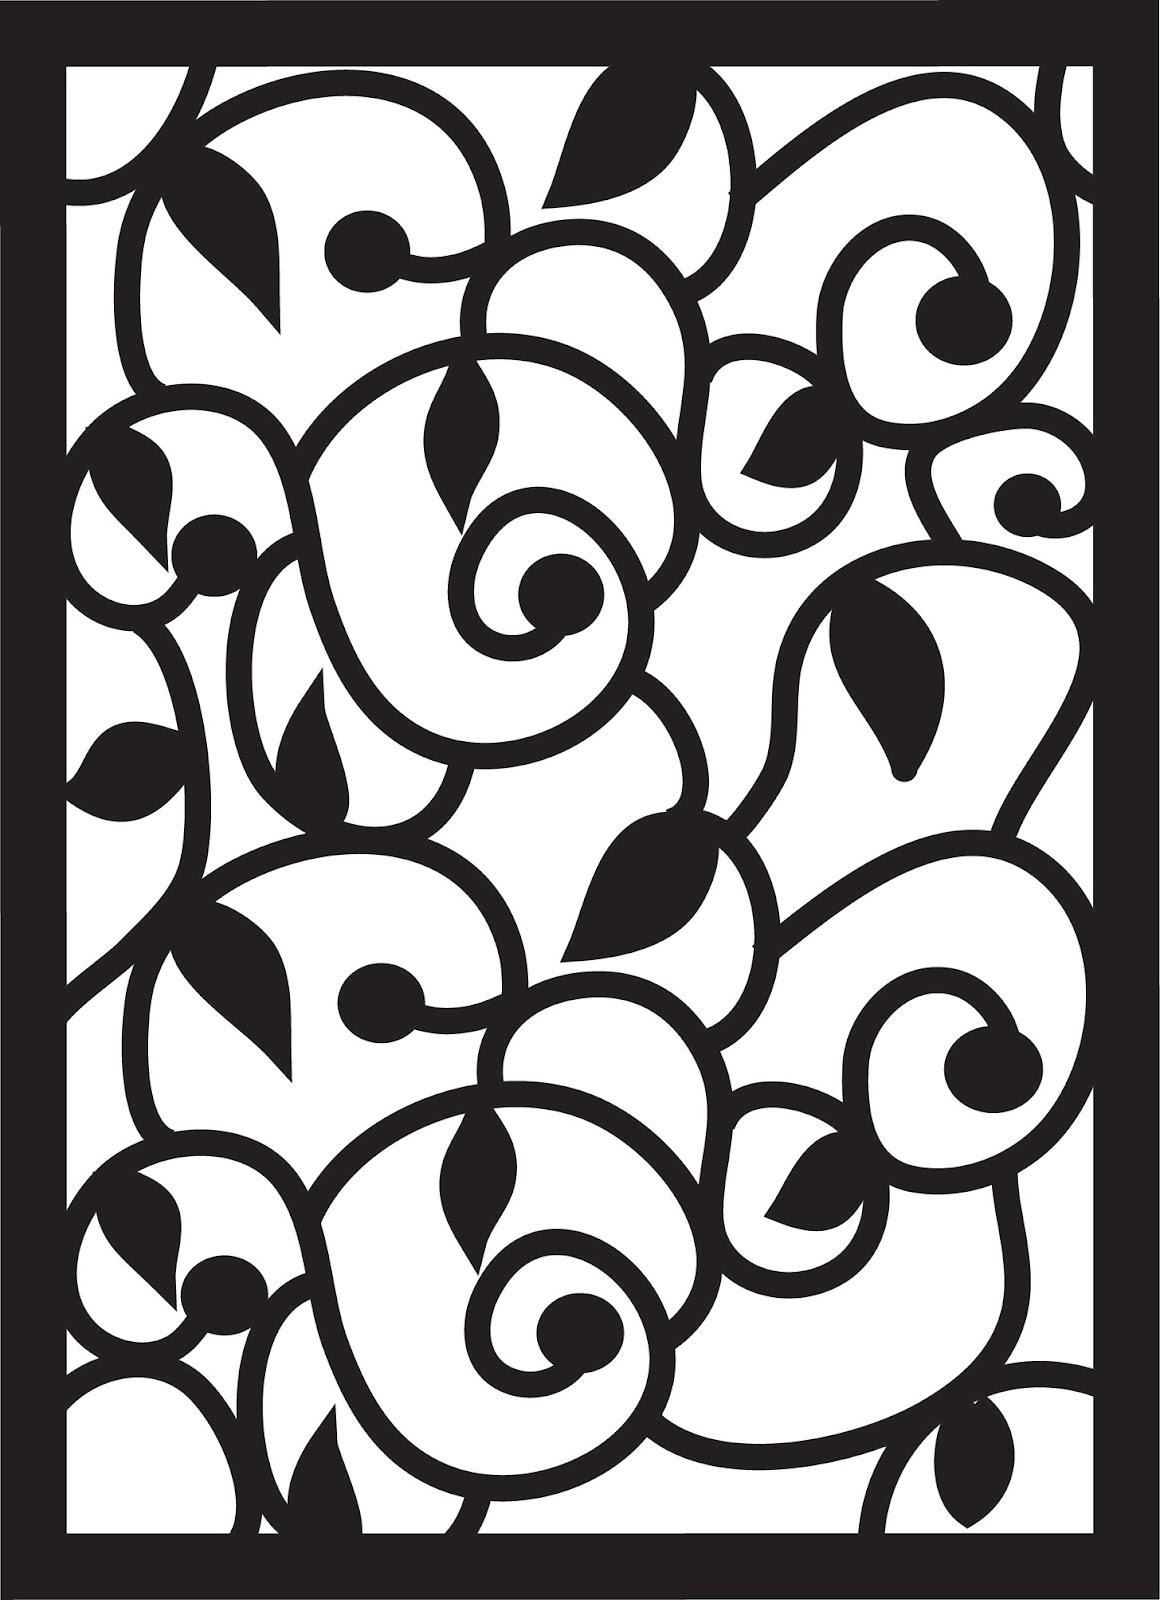 1160x1600 Paper Paper Silhouette Patterns Image. Paper Silhouette Patterns